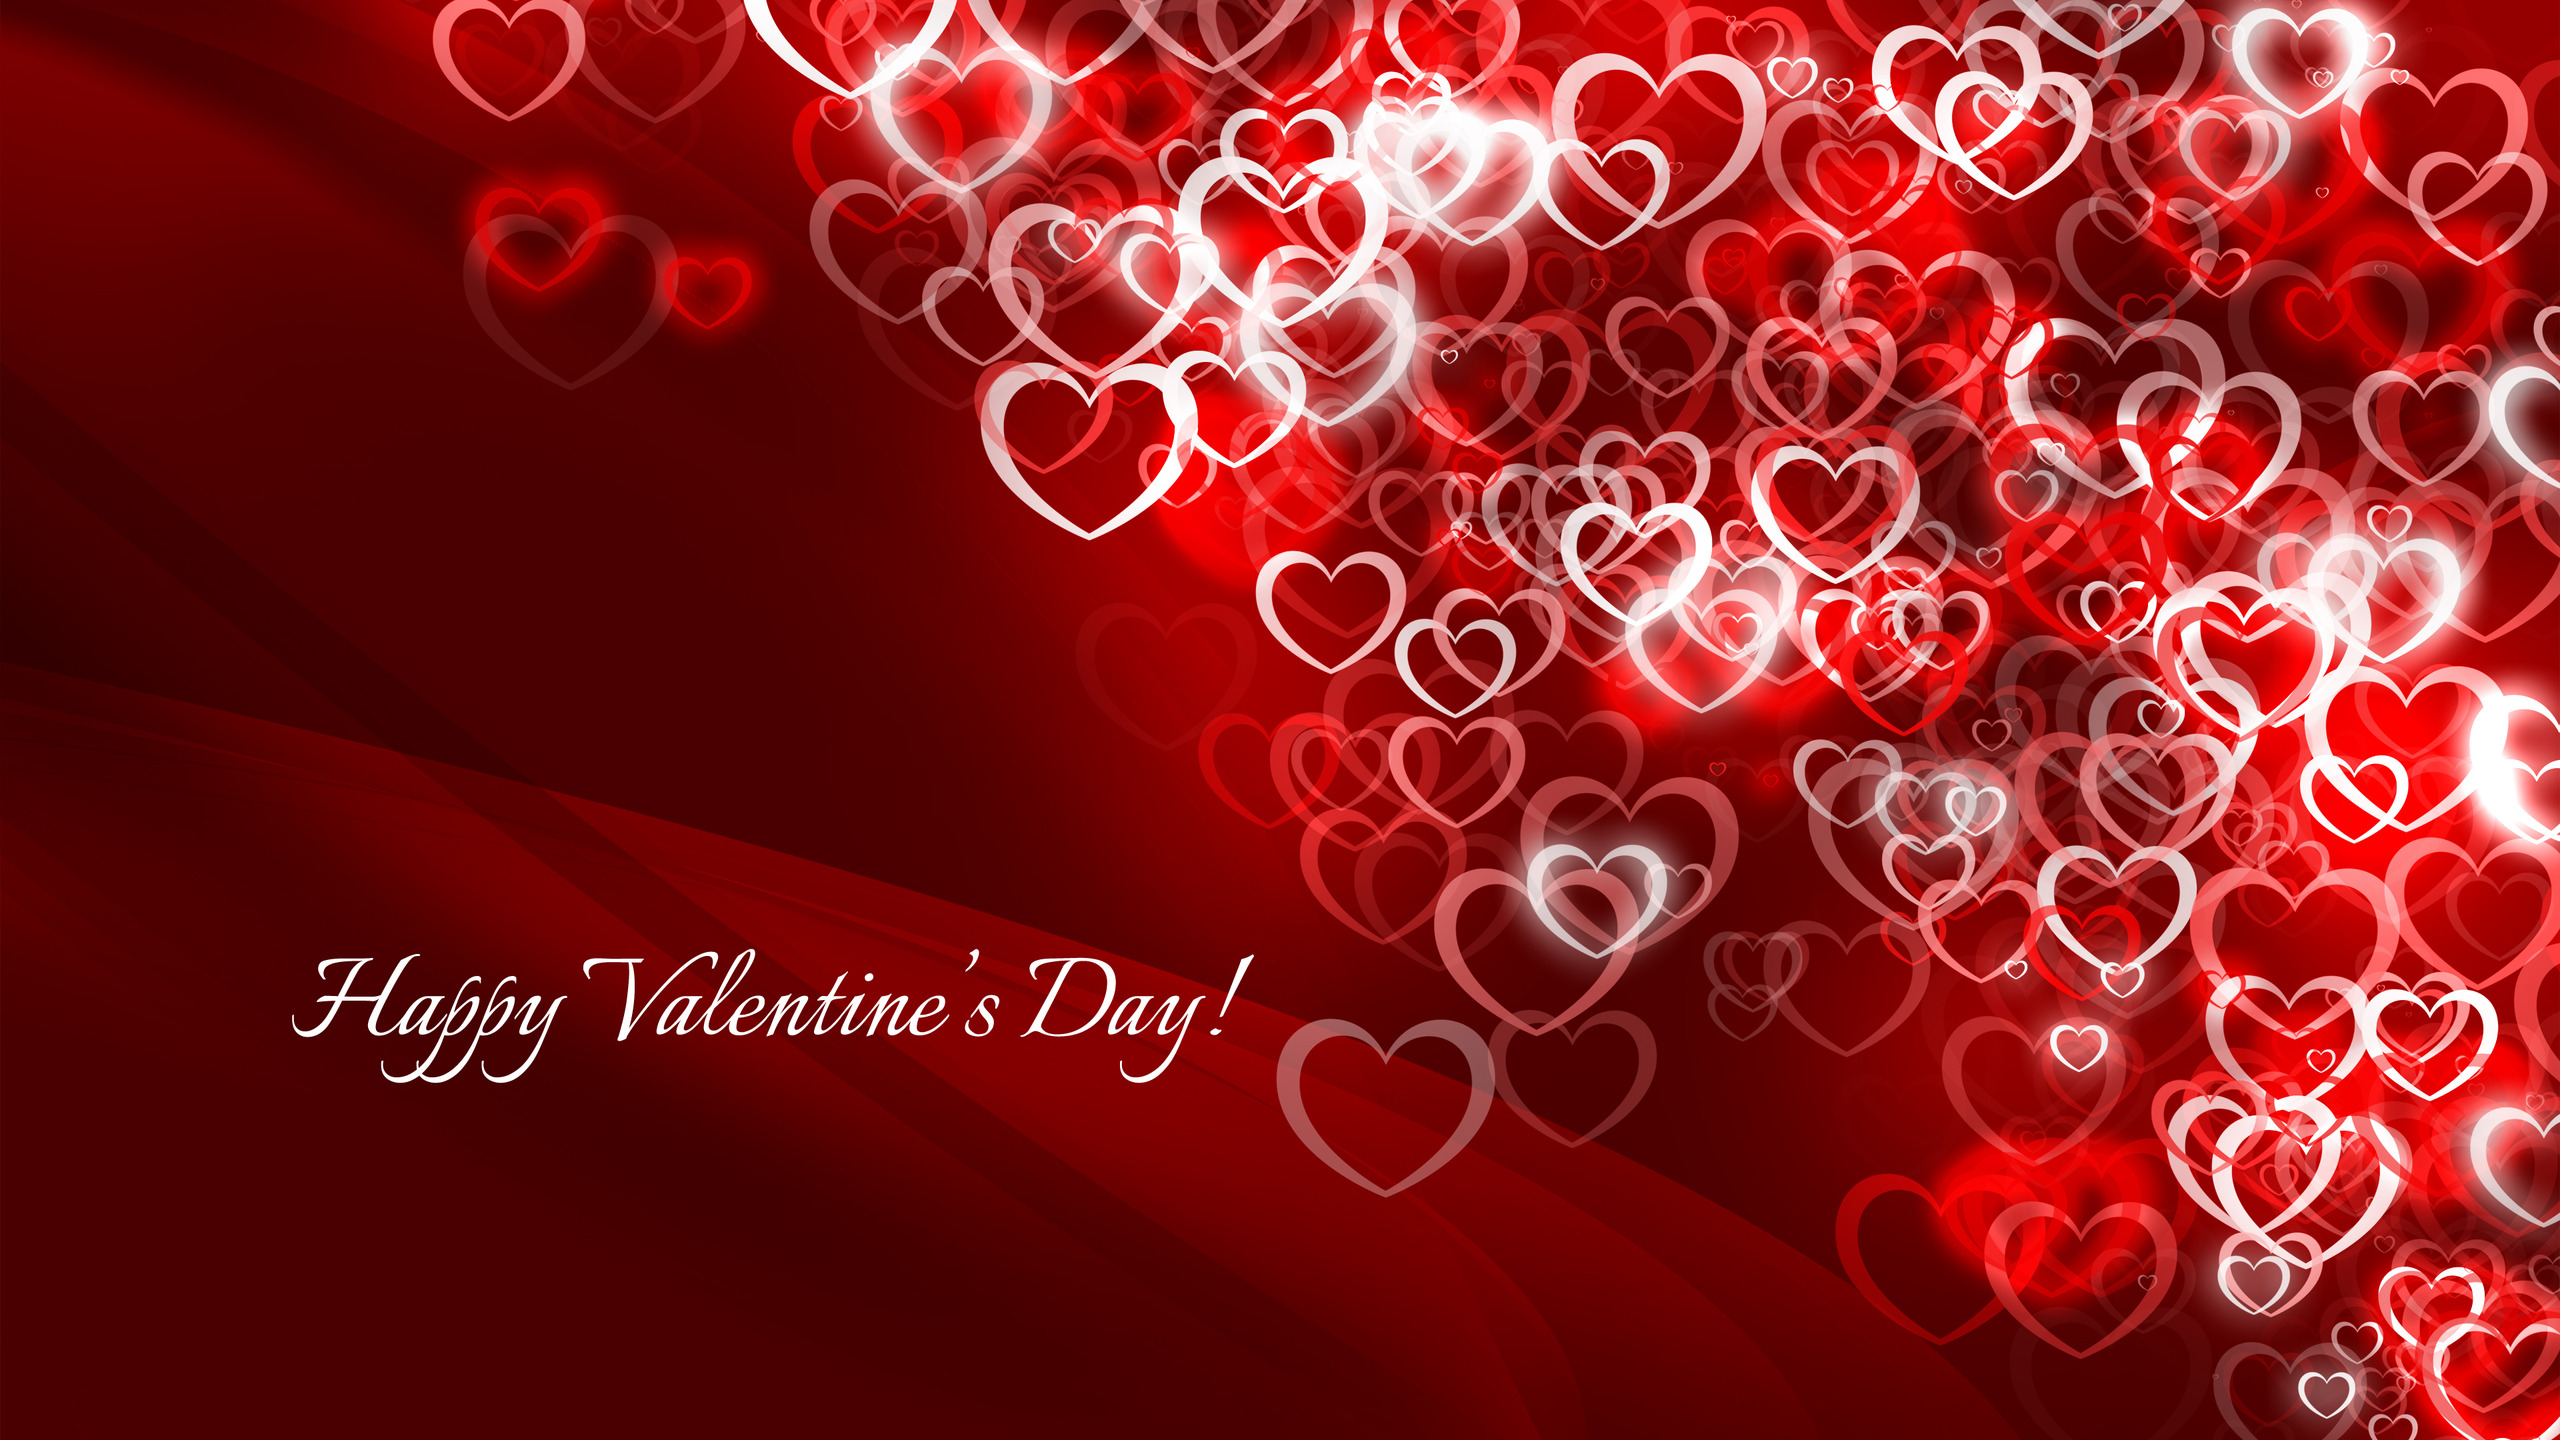 happy valentines day hearts hd wallpaper free dekstop